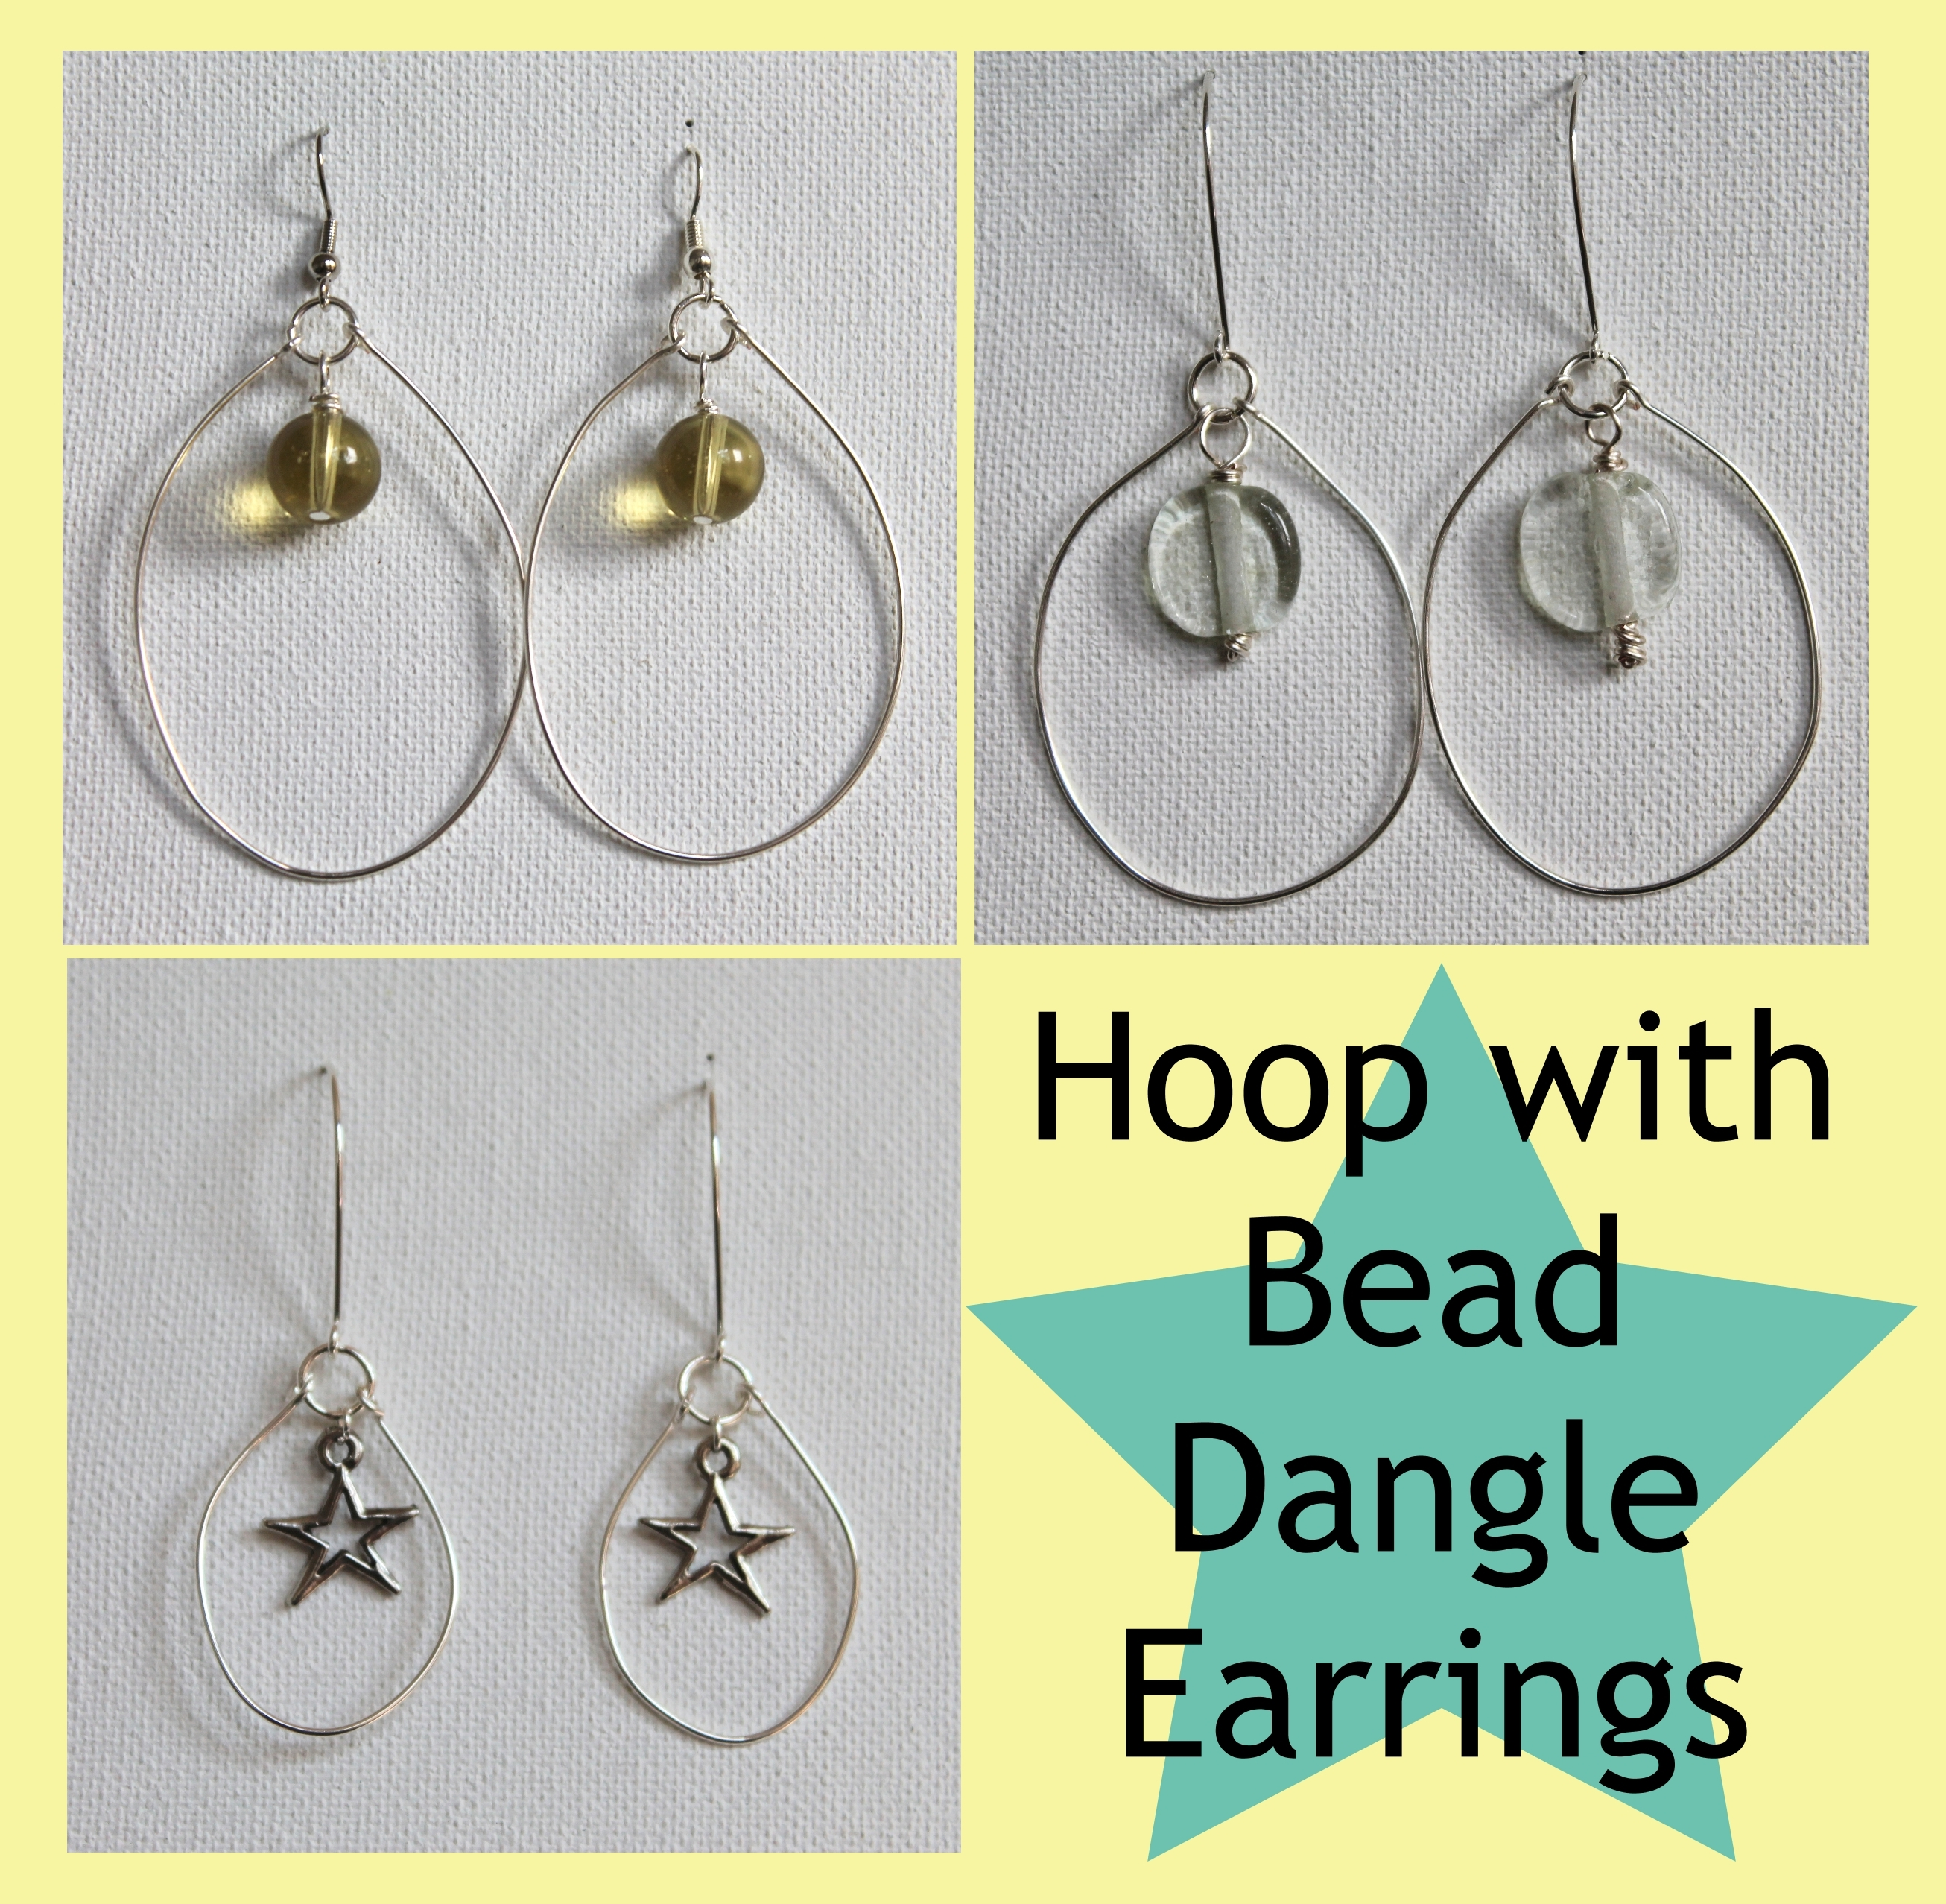 Hoop with Bead Dangle Earrings Pattern